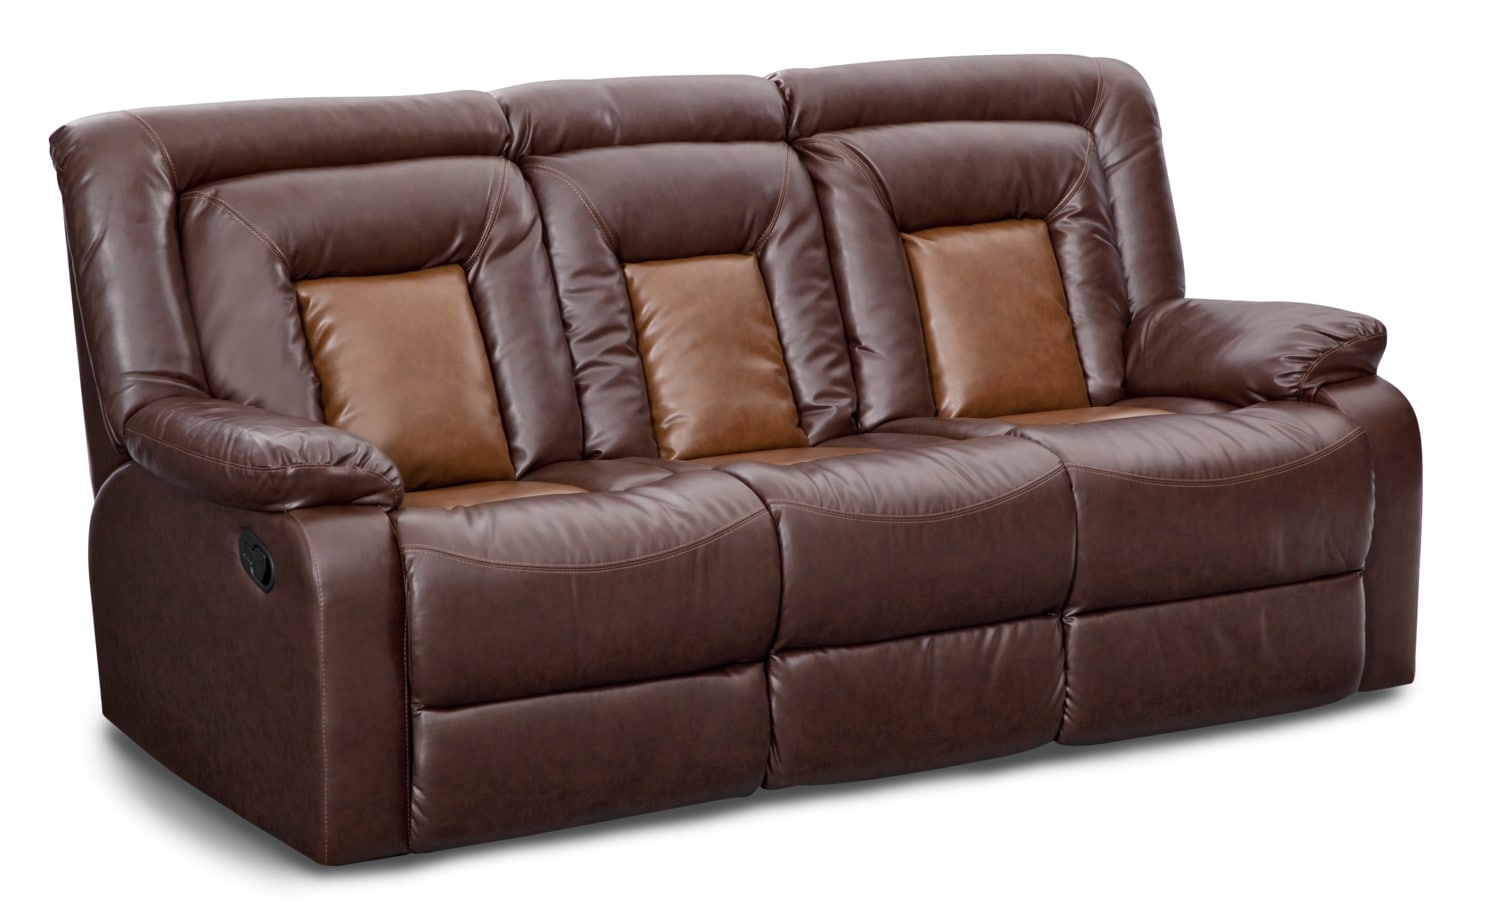 Comfortable Recliner Couches sofas & couches | living room seating | american signature furniture